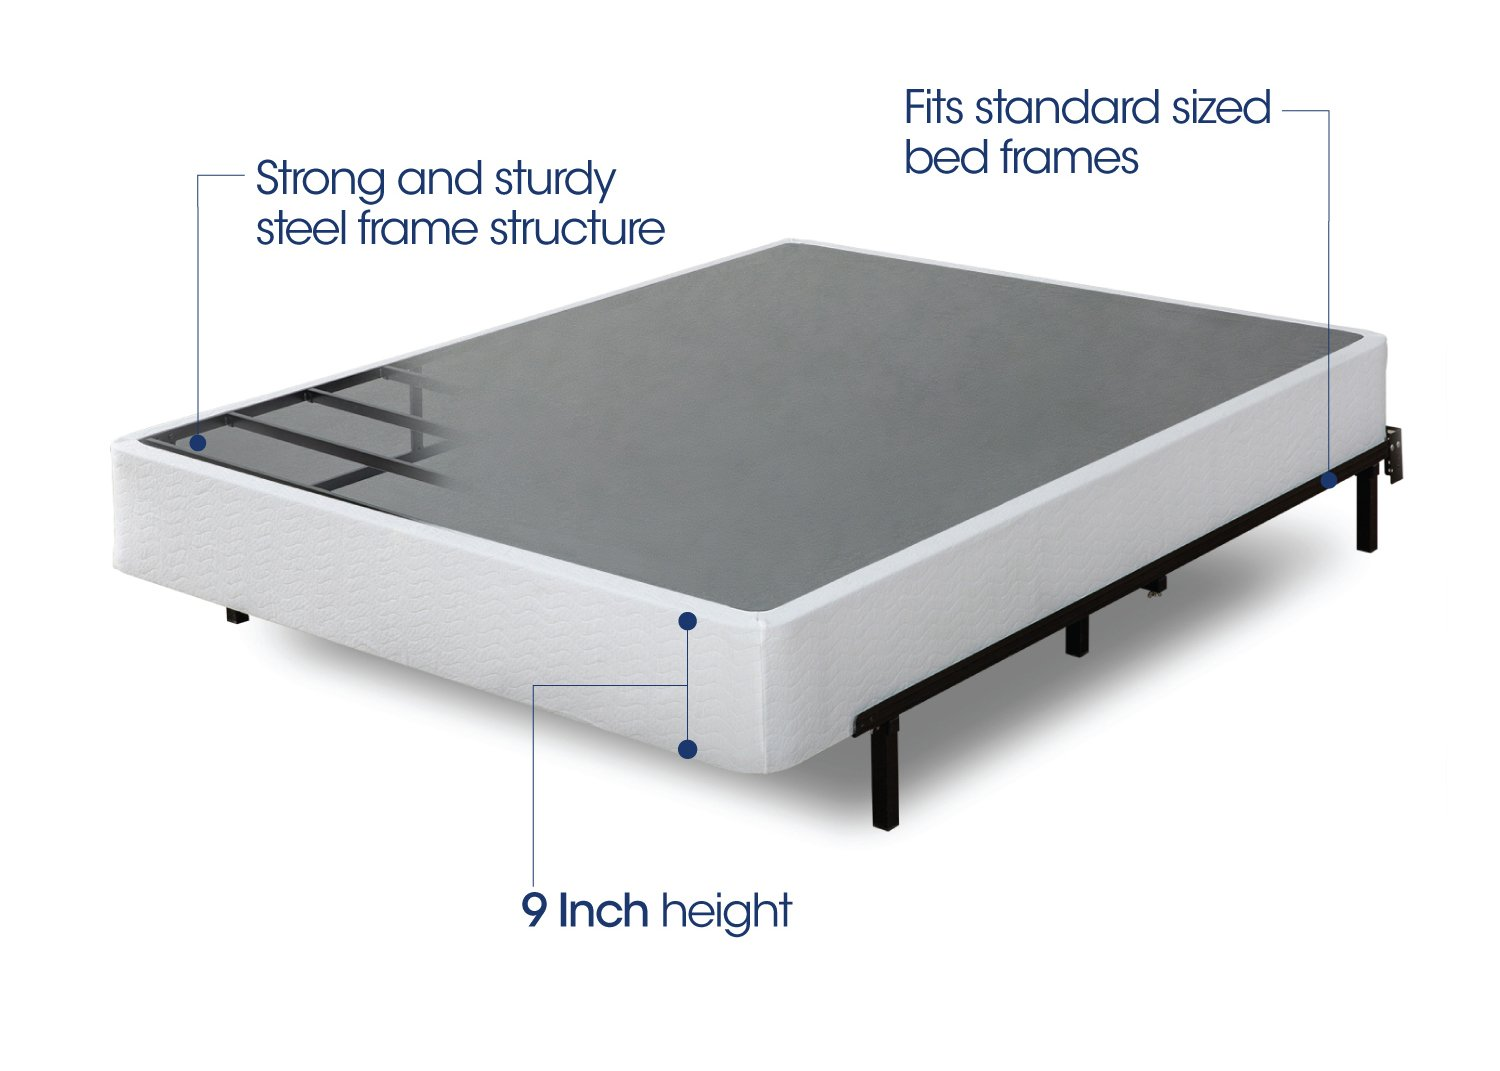 Zinus 9 Inch High Profile Smart Box Spring Mattress